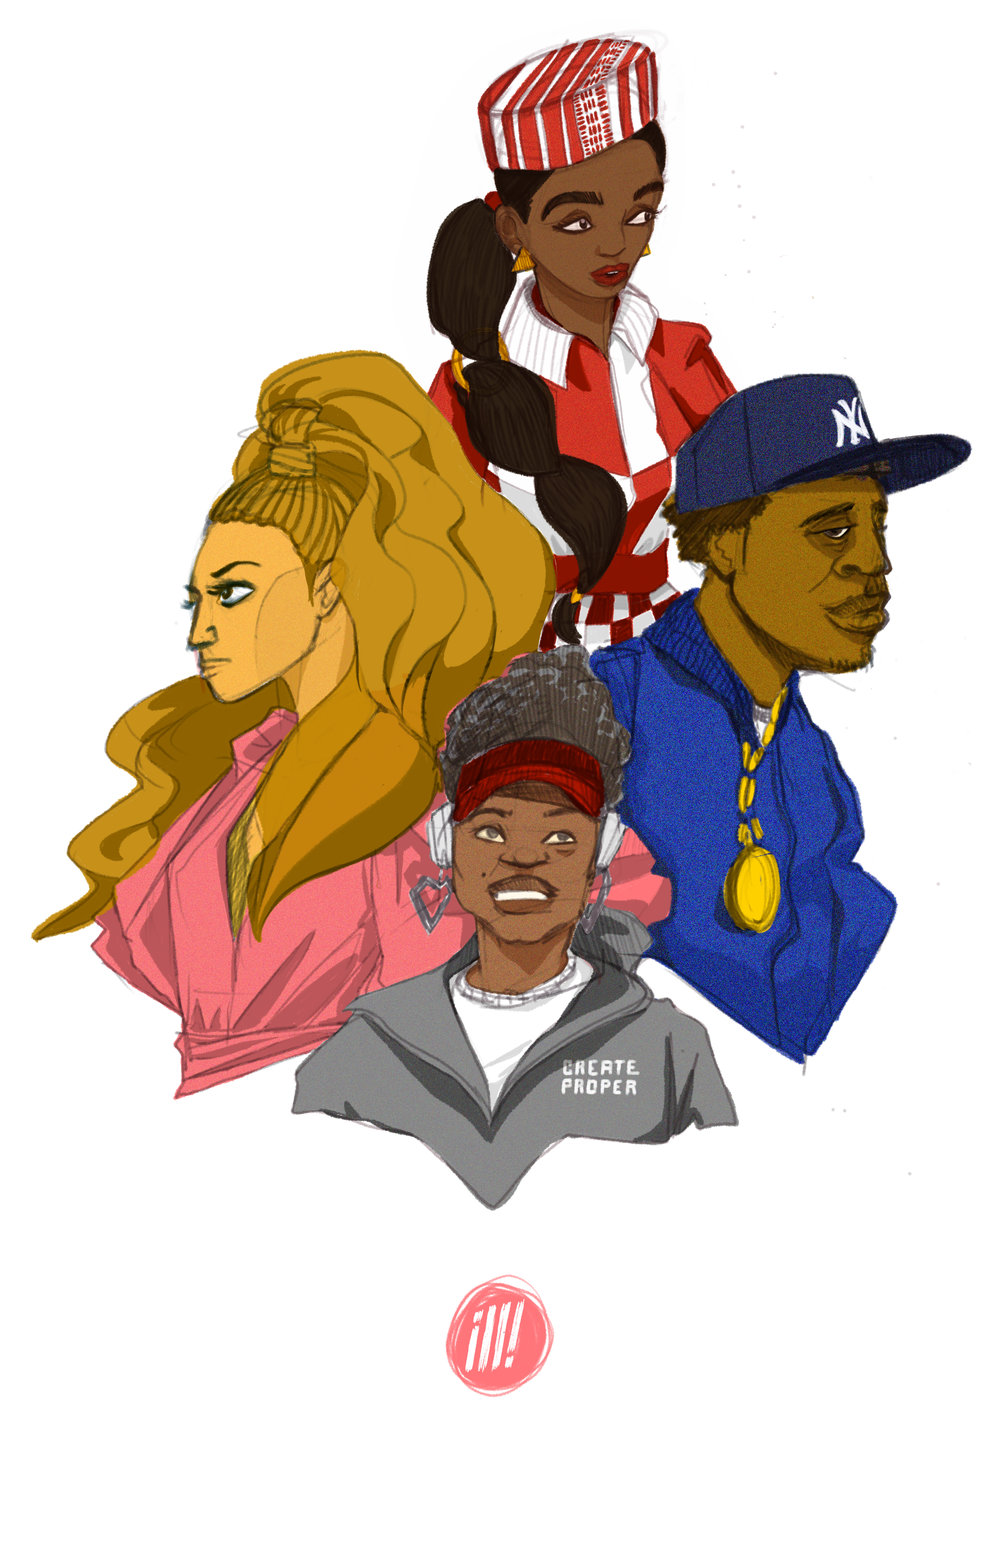 Beyoncé, Janelle Monáe, Jay-Z and local Detroit artist Jaye Prime!